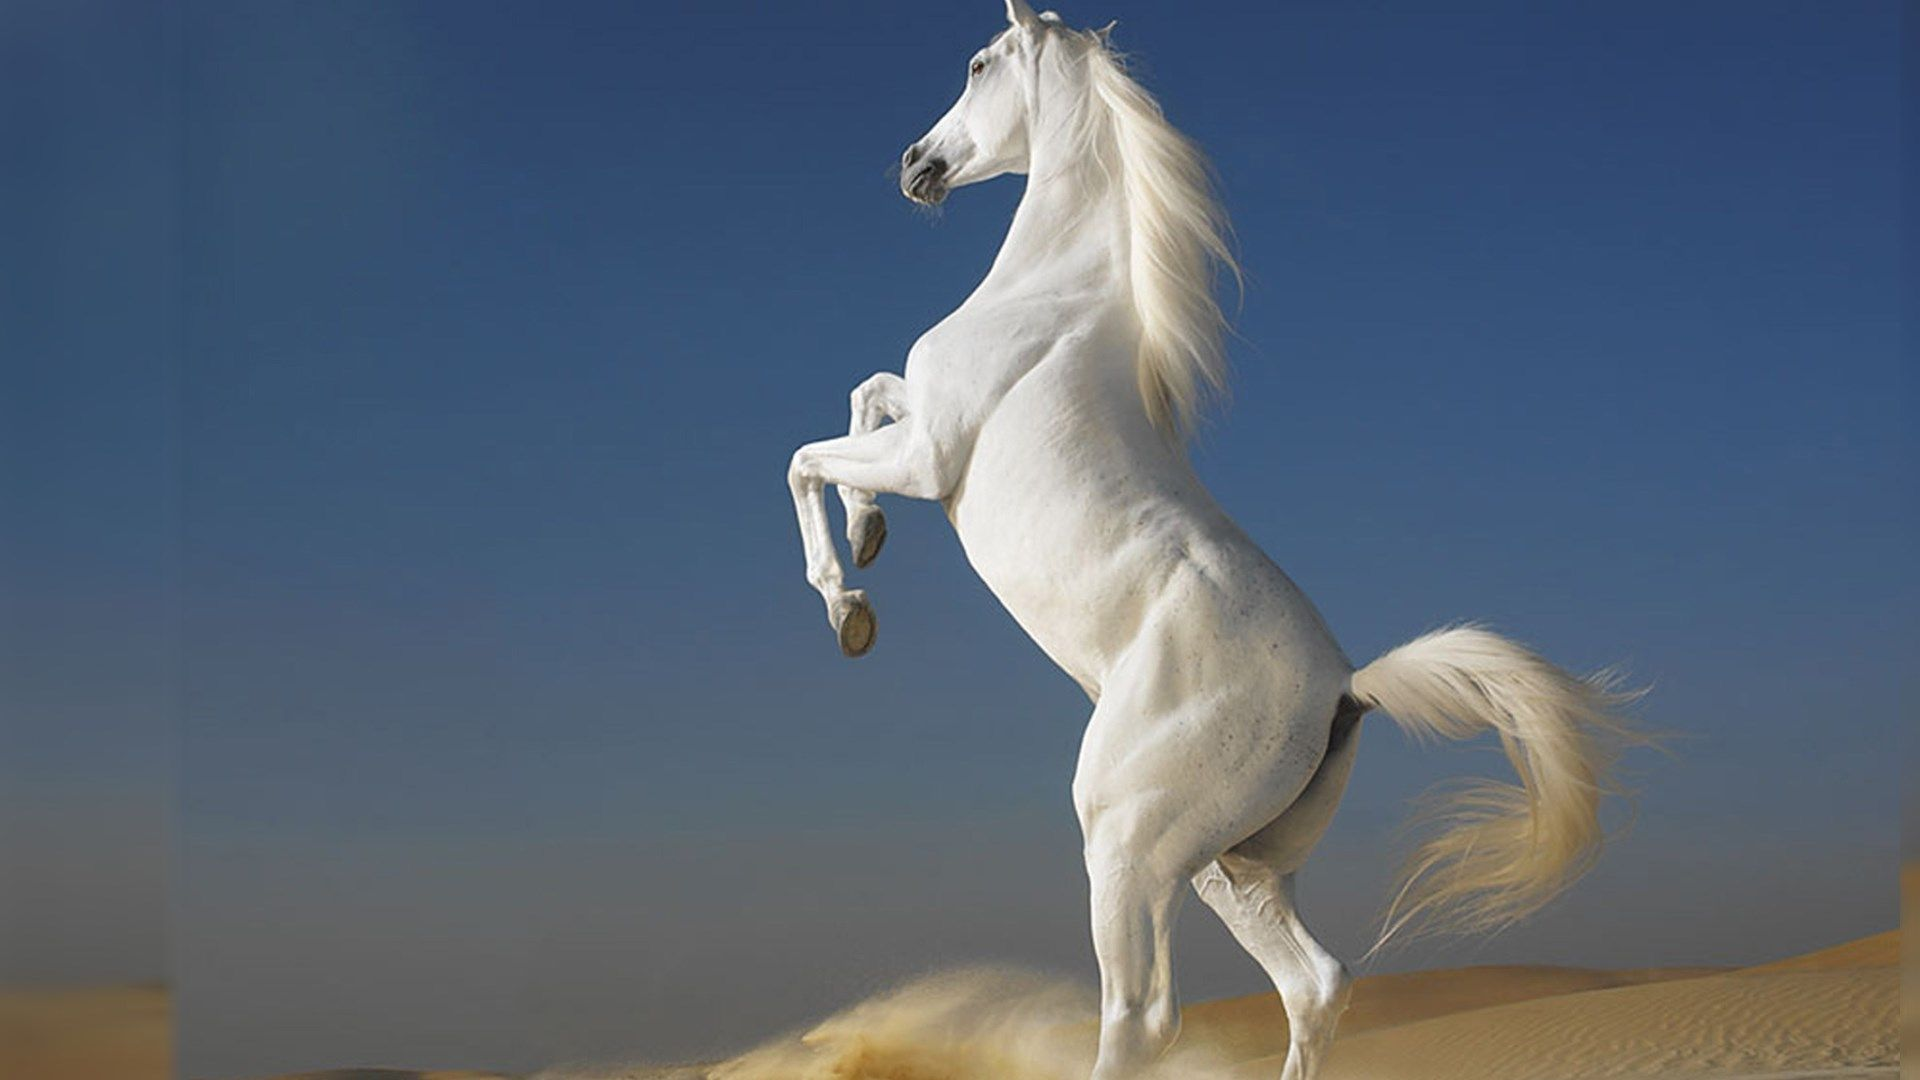 white horse best hd desktop wallpapers free